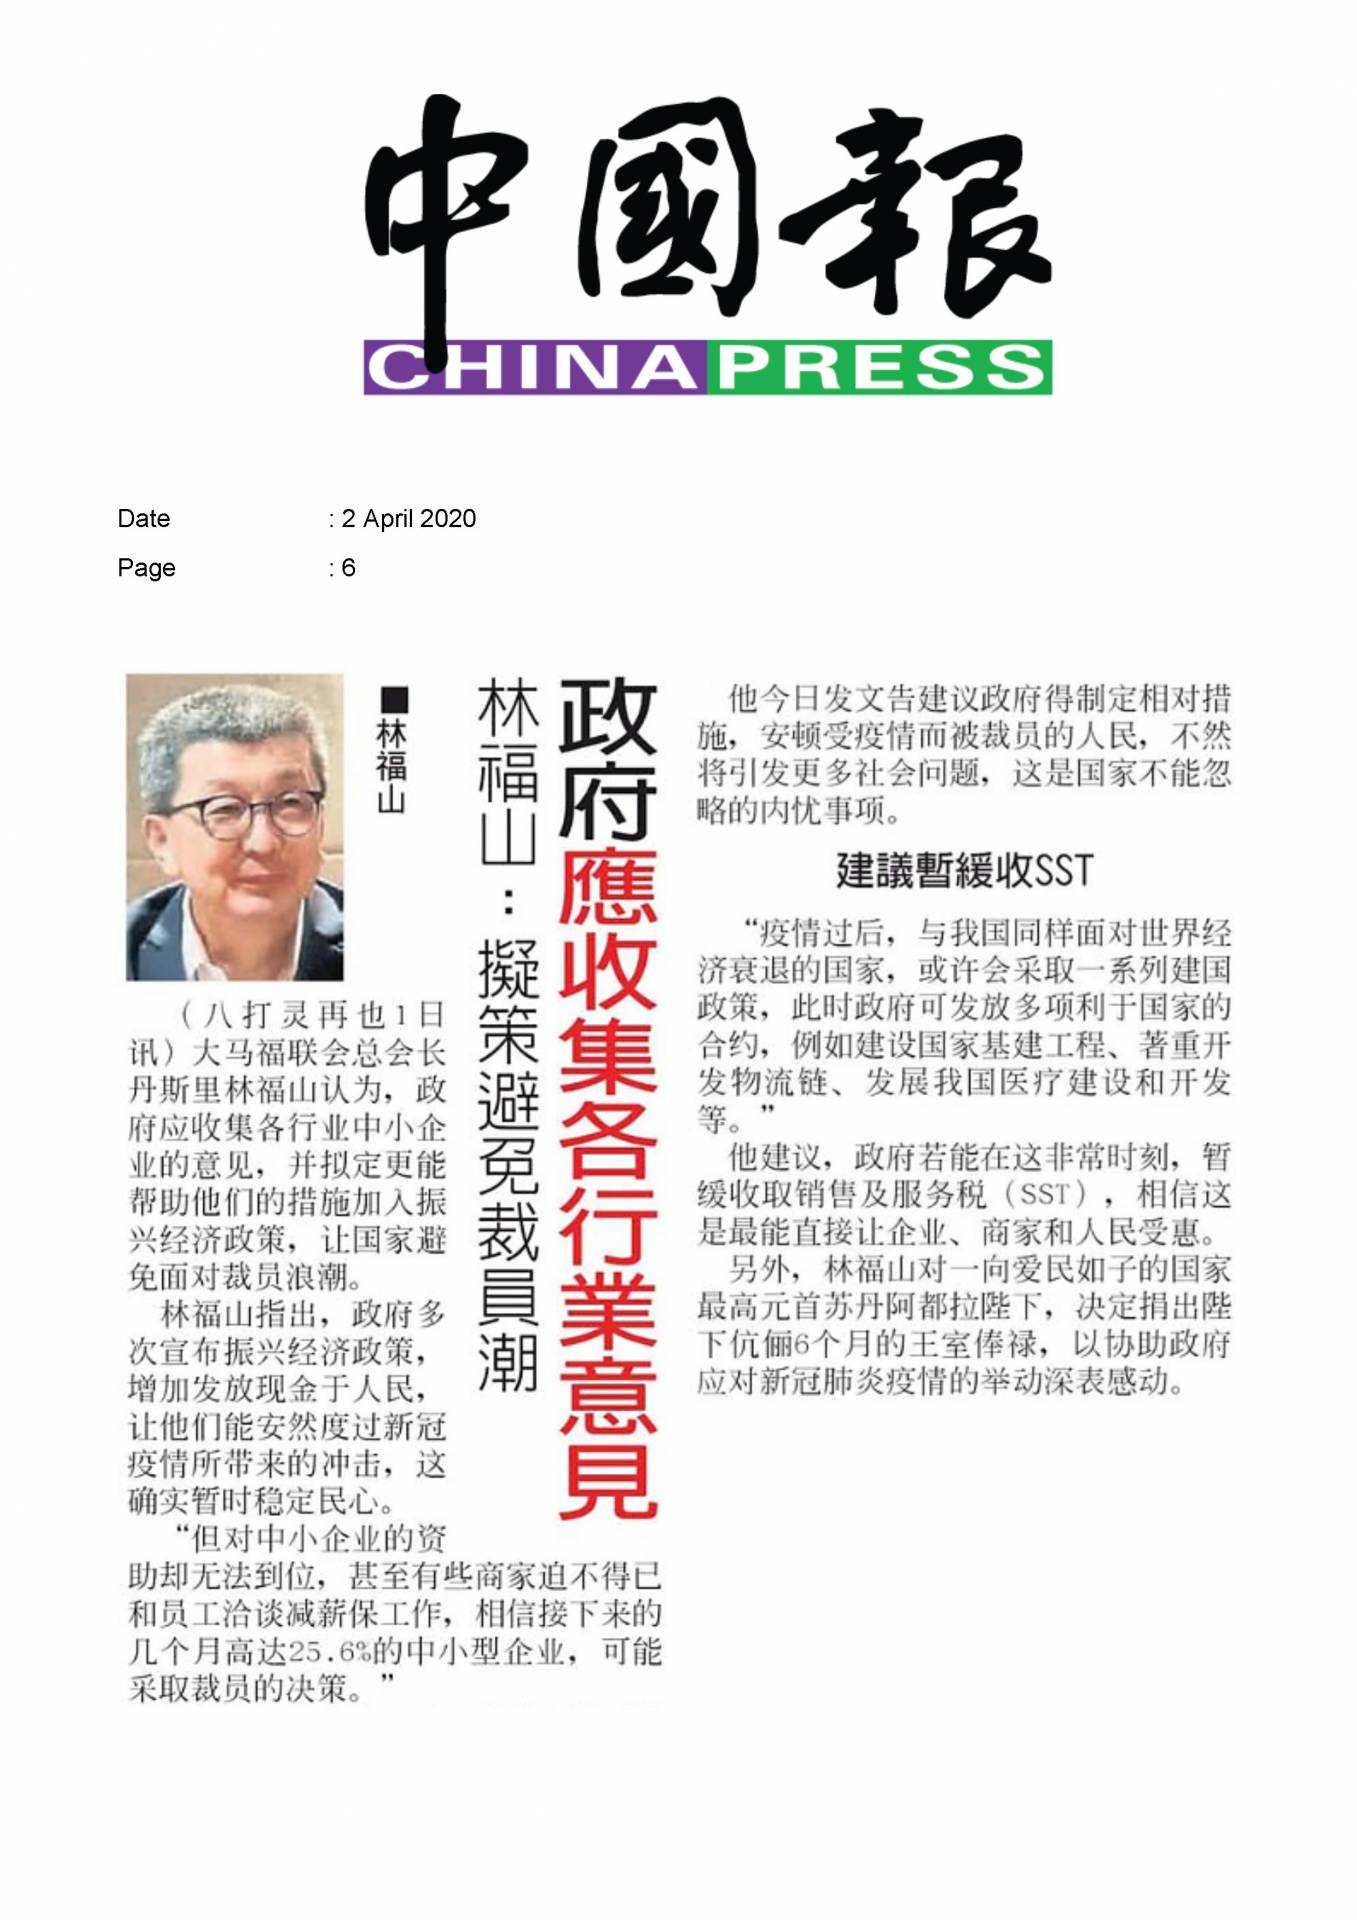 2020.04.02 China Press - Government should collect opinions from various industries